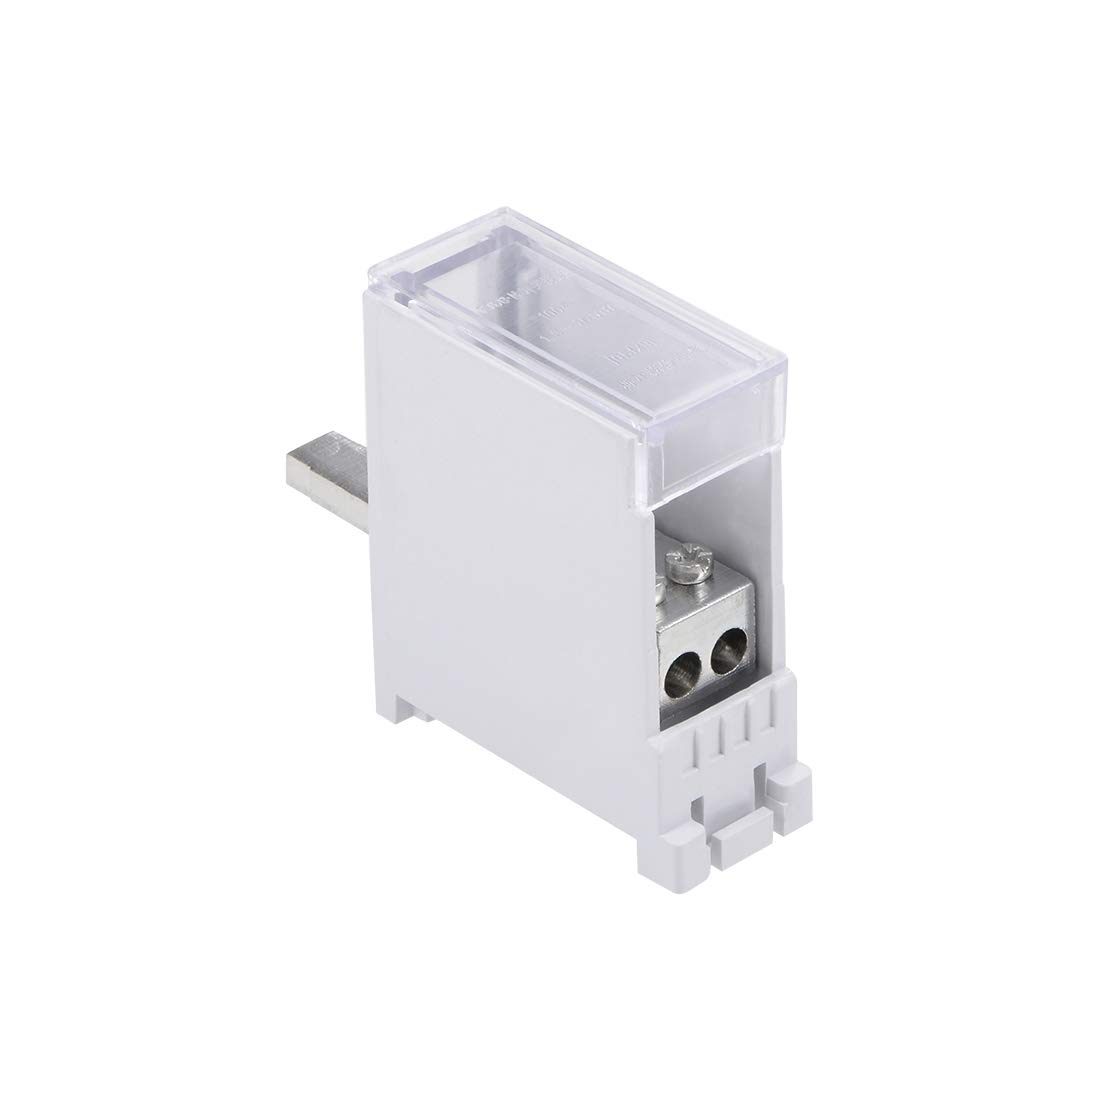 uxcell 1 Inlet 4 Outlet Wire Terminal Strip Blocks 690V 63A DIN Rail Distribution Block for Circuit Breaker